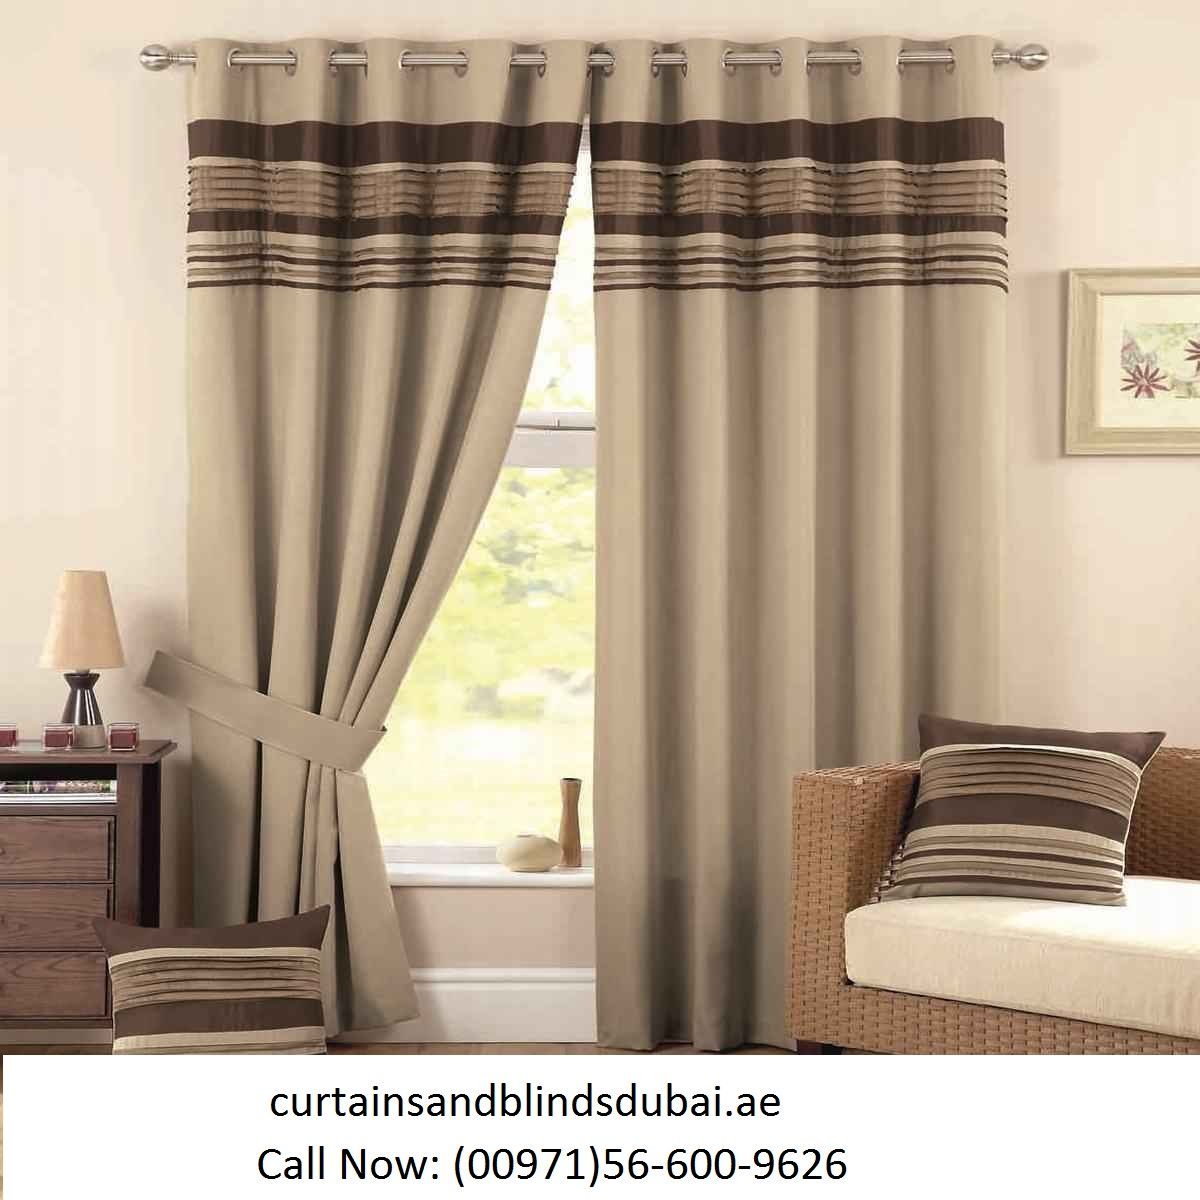 Curtainsandblinds Dubai Supllies York Curtains Dubai That Are